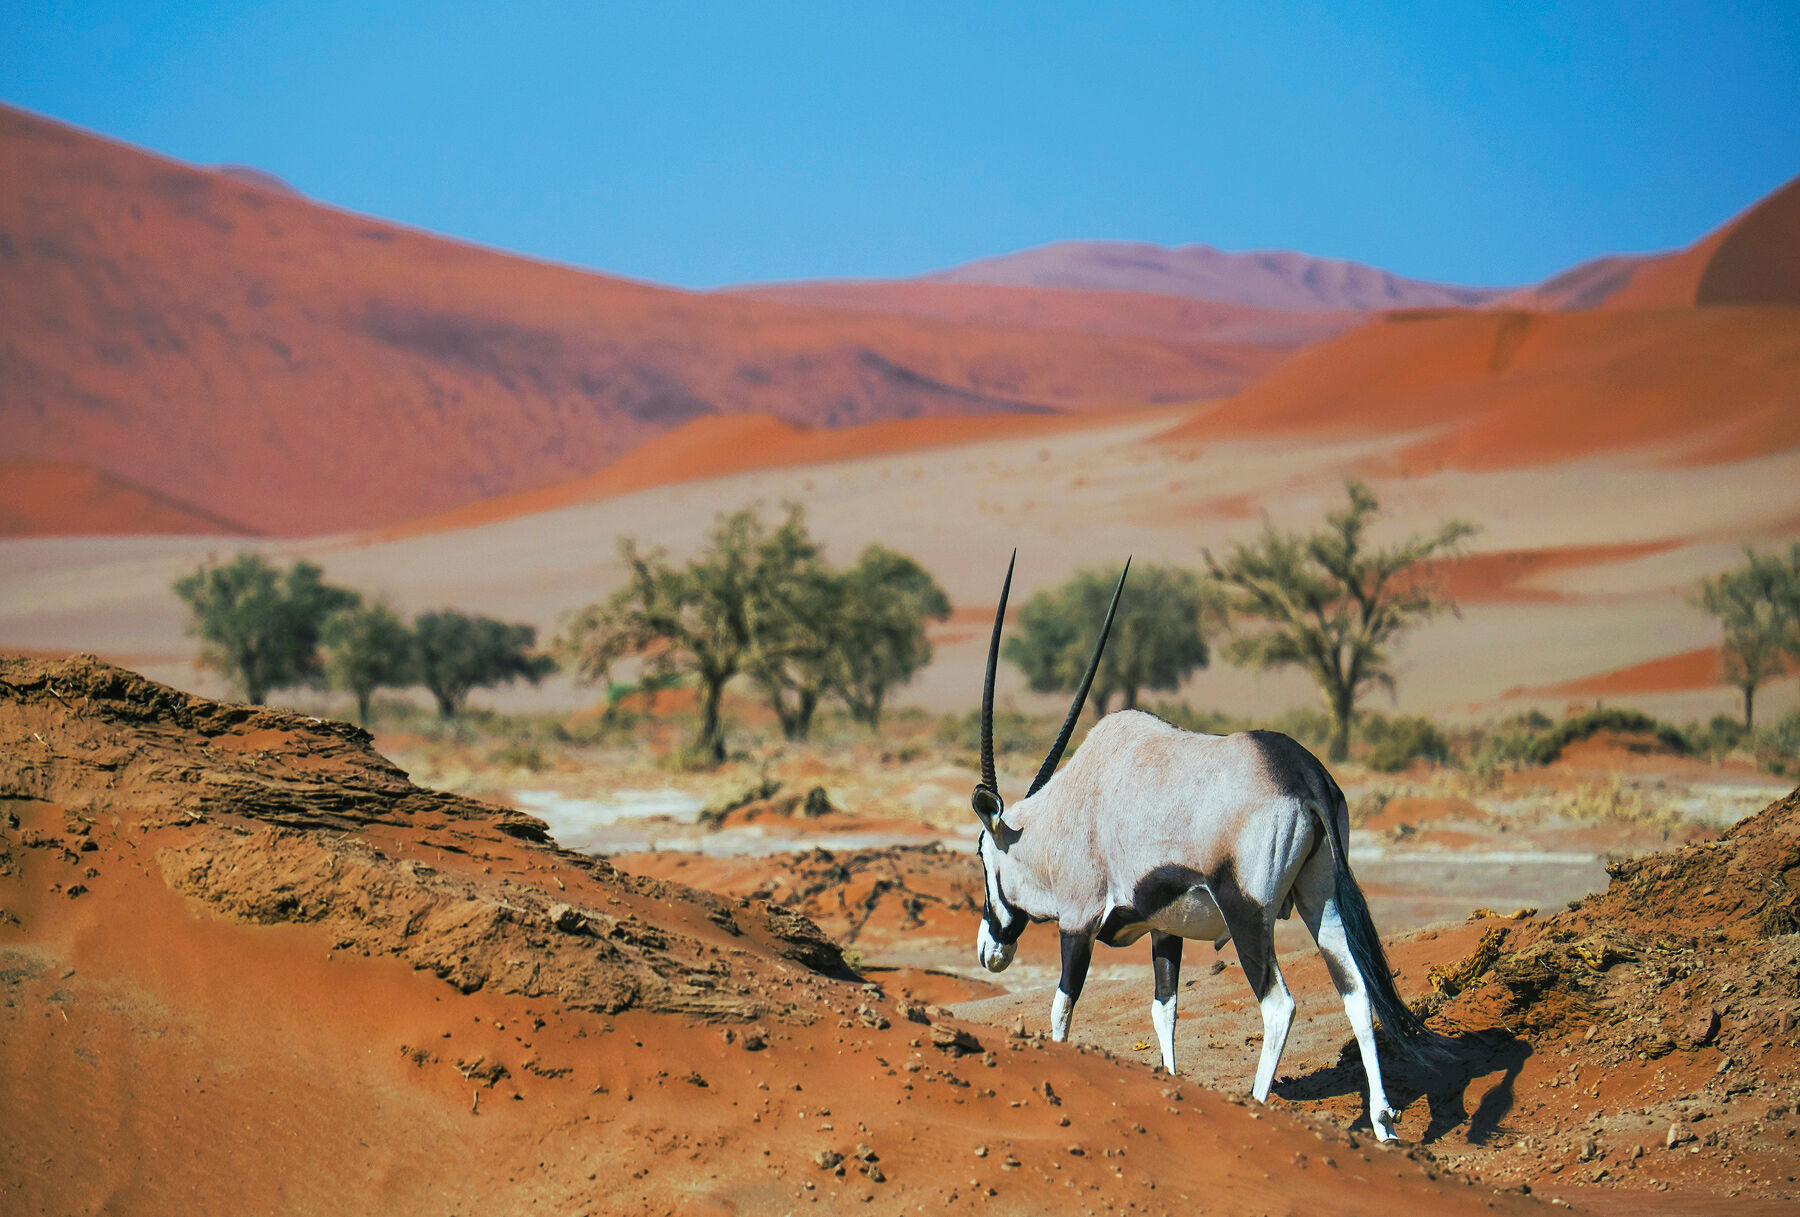 This is the other picture of the Gemsbok that I am most pleased with.  The lighting is beautiful and the surreal nature of the...